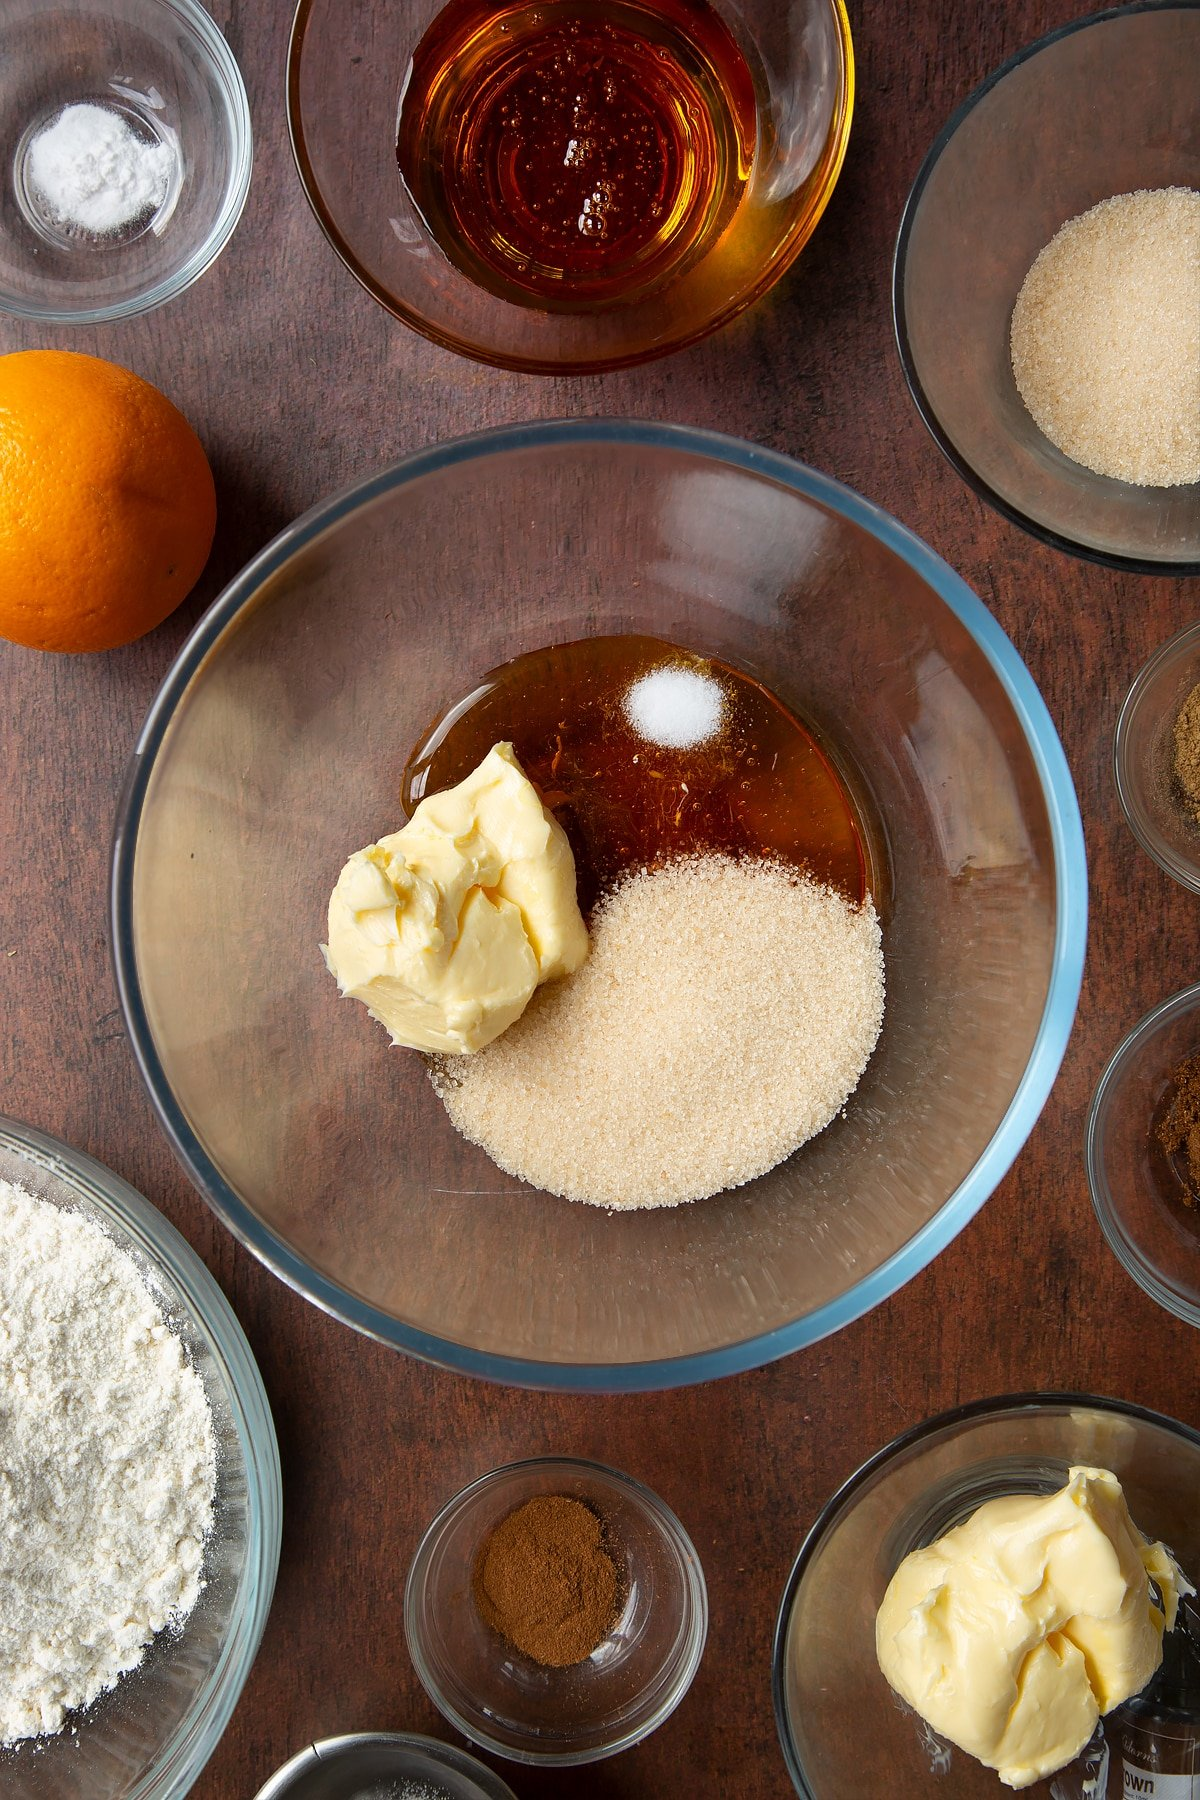 Butter, sugar, salt and golden syrup in a bowl. Ingredients to make autumn cookies surround the bowl.